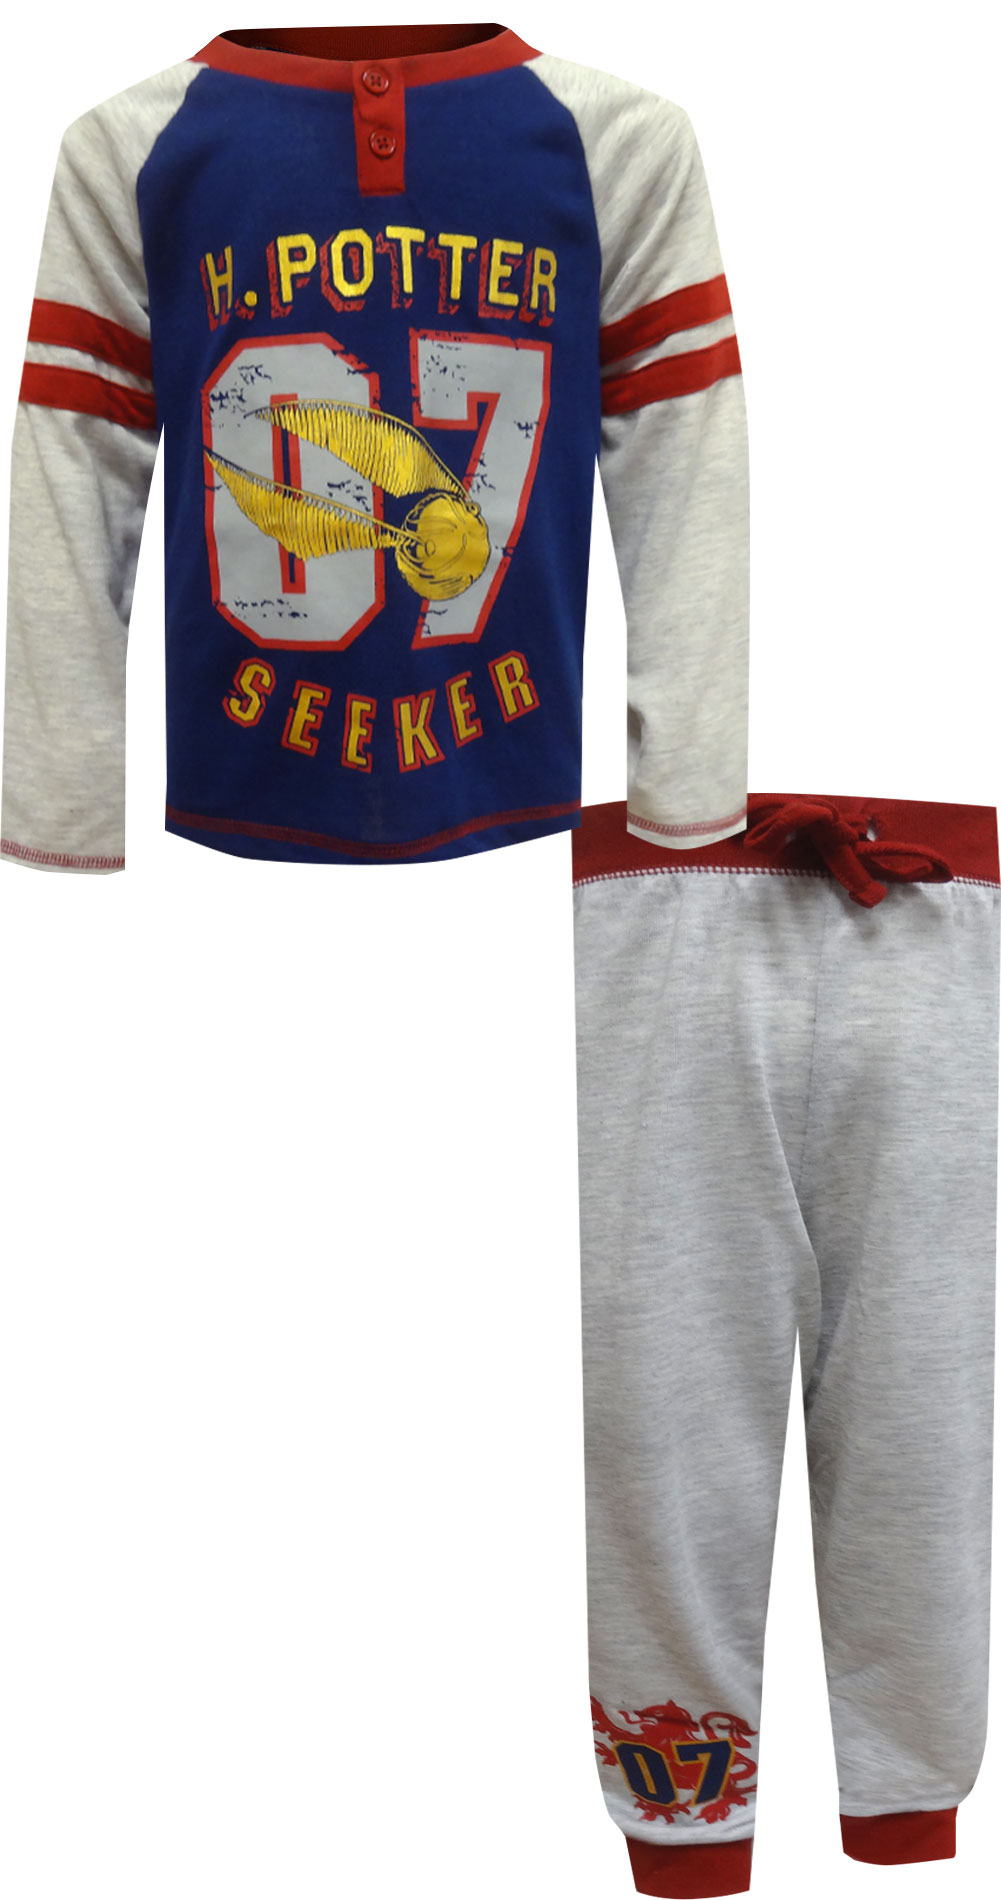 Image of Harry Potter Quidditch Seeker Uniform Pajama for boys